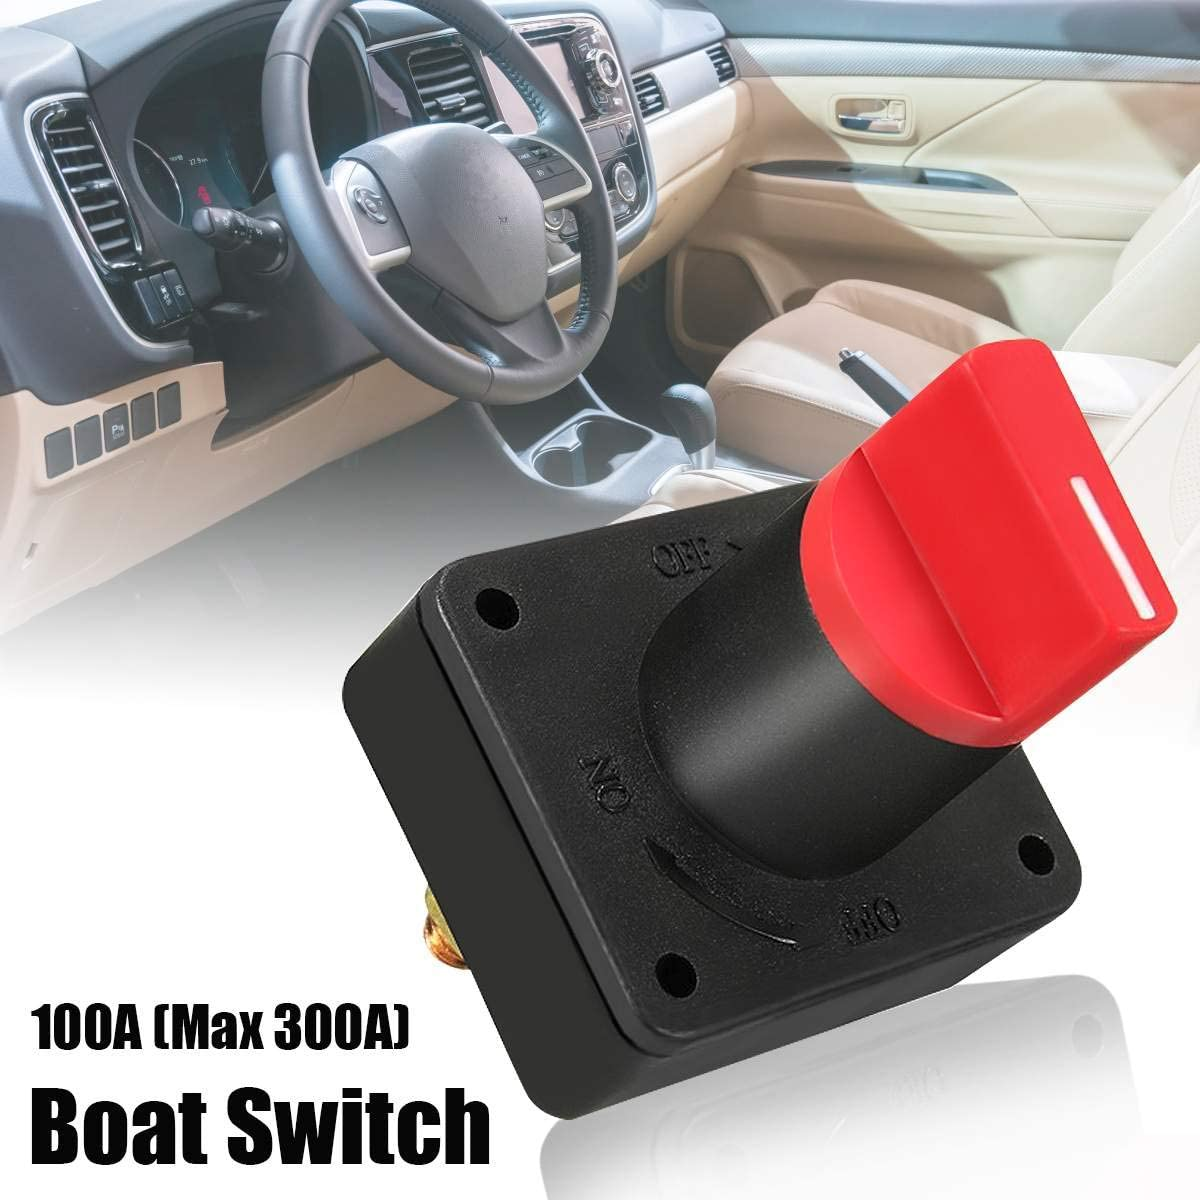 100A Battery Isolator Master Disconnect Power Cut Off Kill Switch Boat Car Van